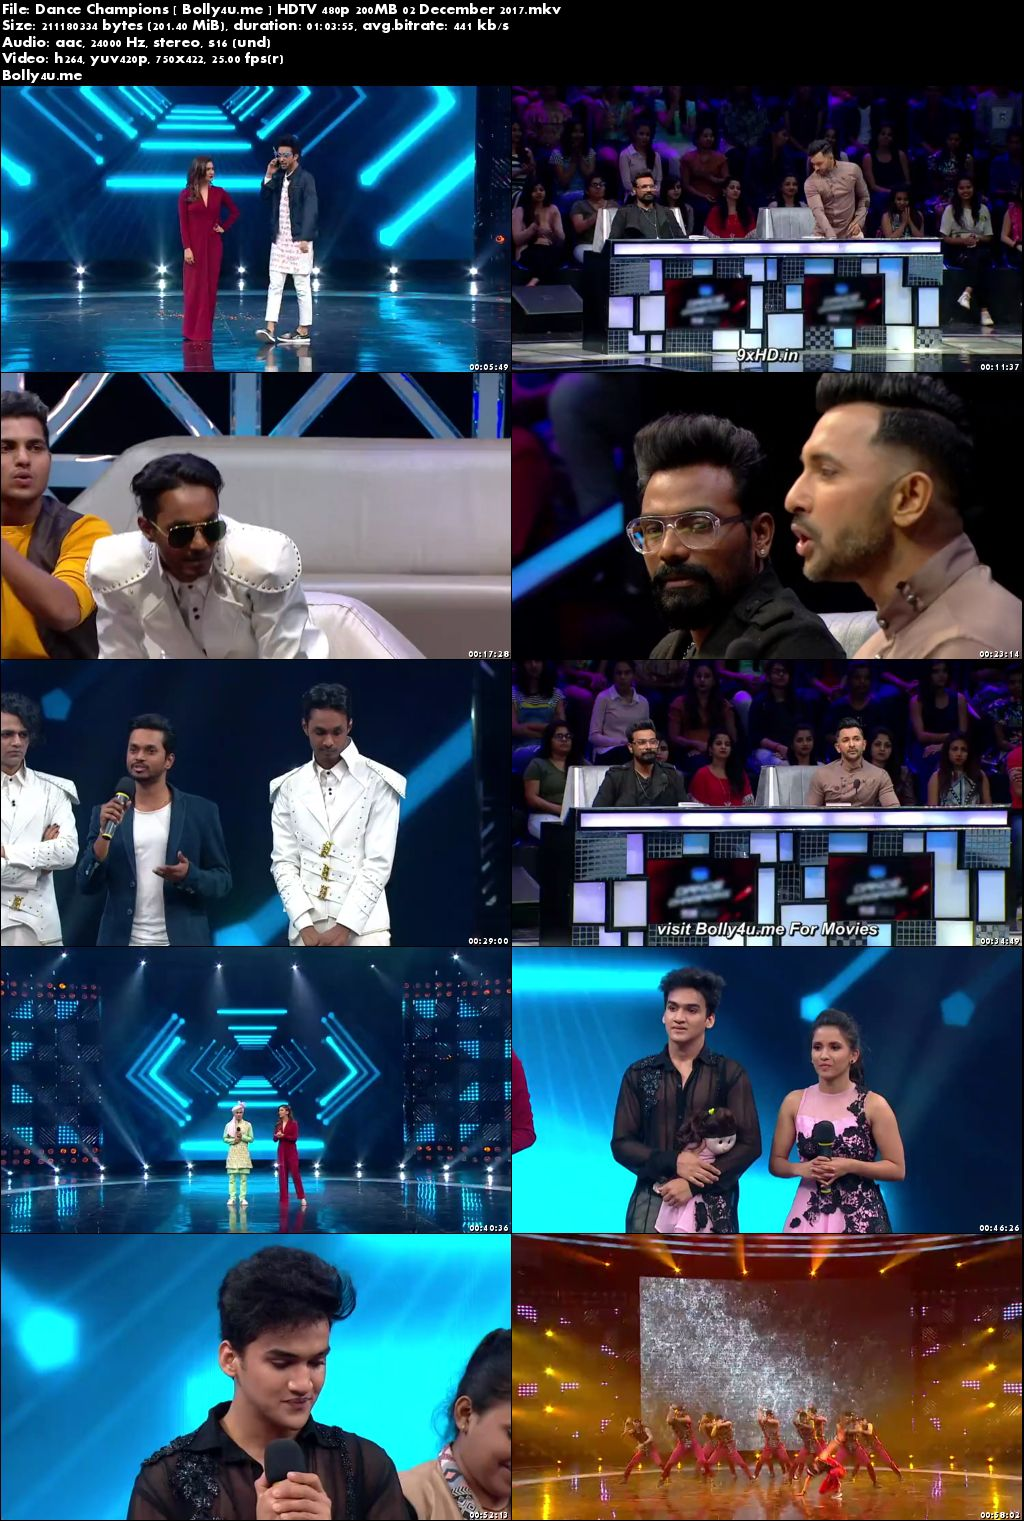 Dance Champions HDTV 480p 200MB 02 December 2017 Download